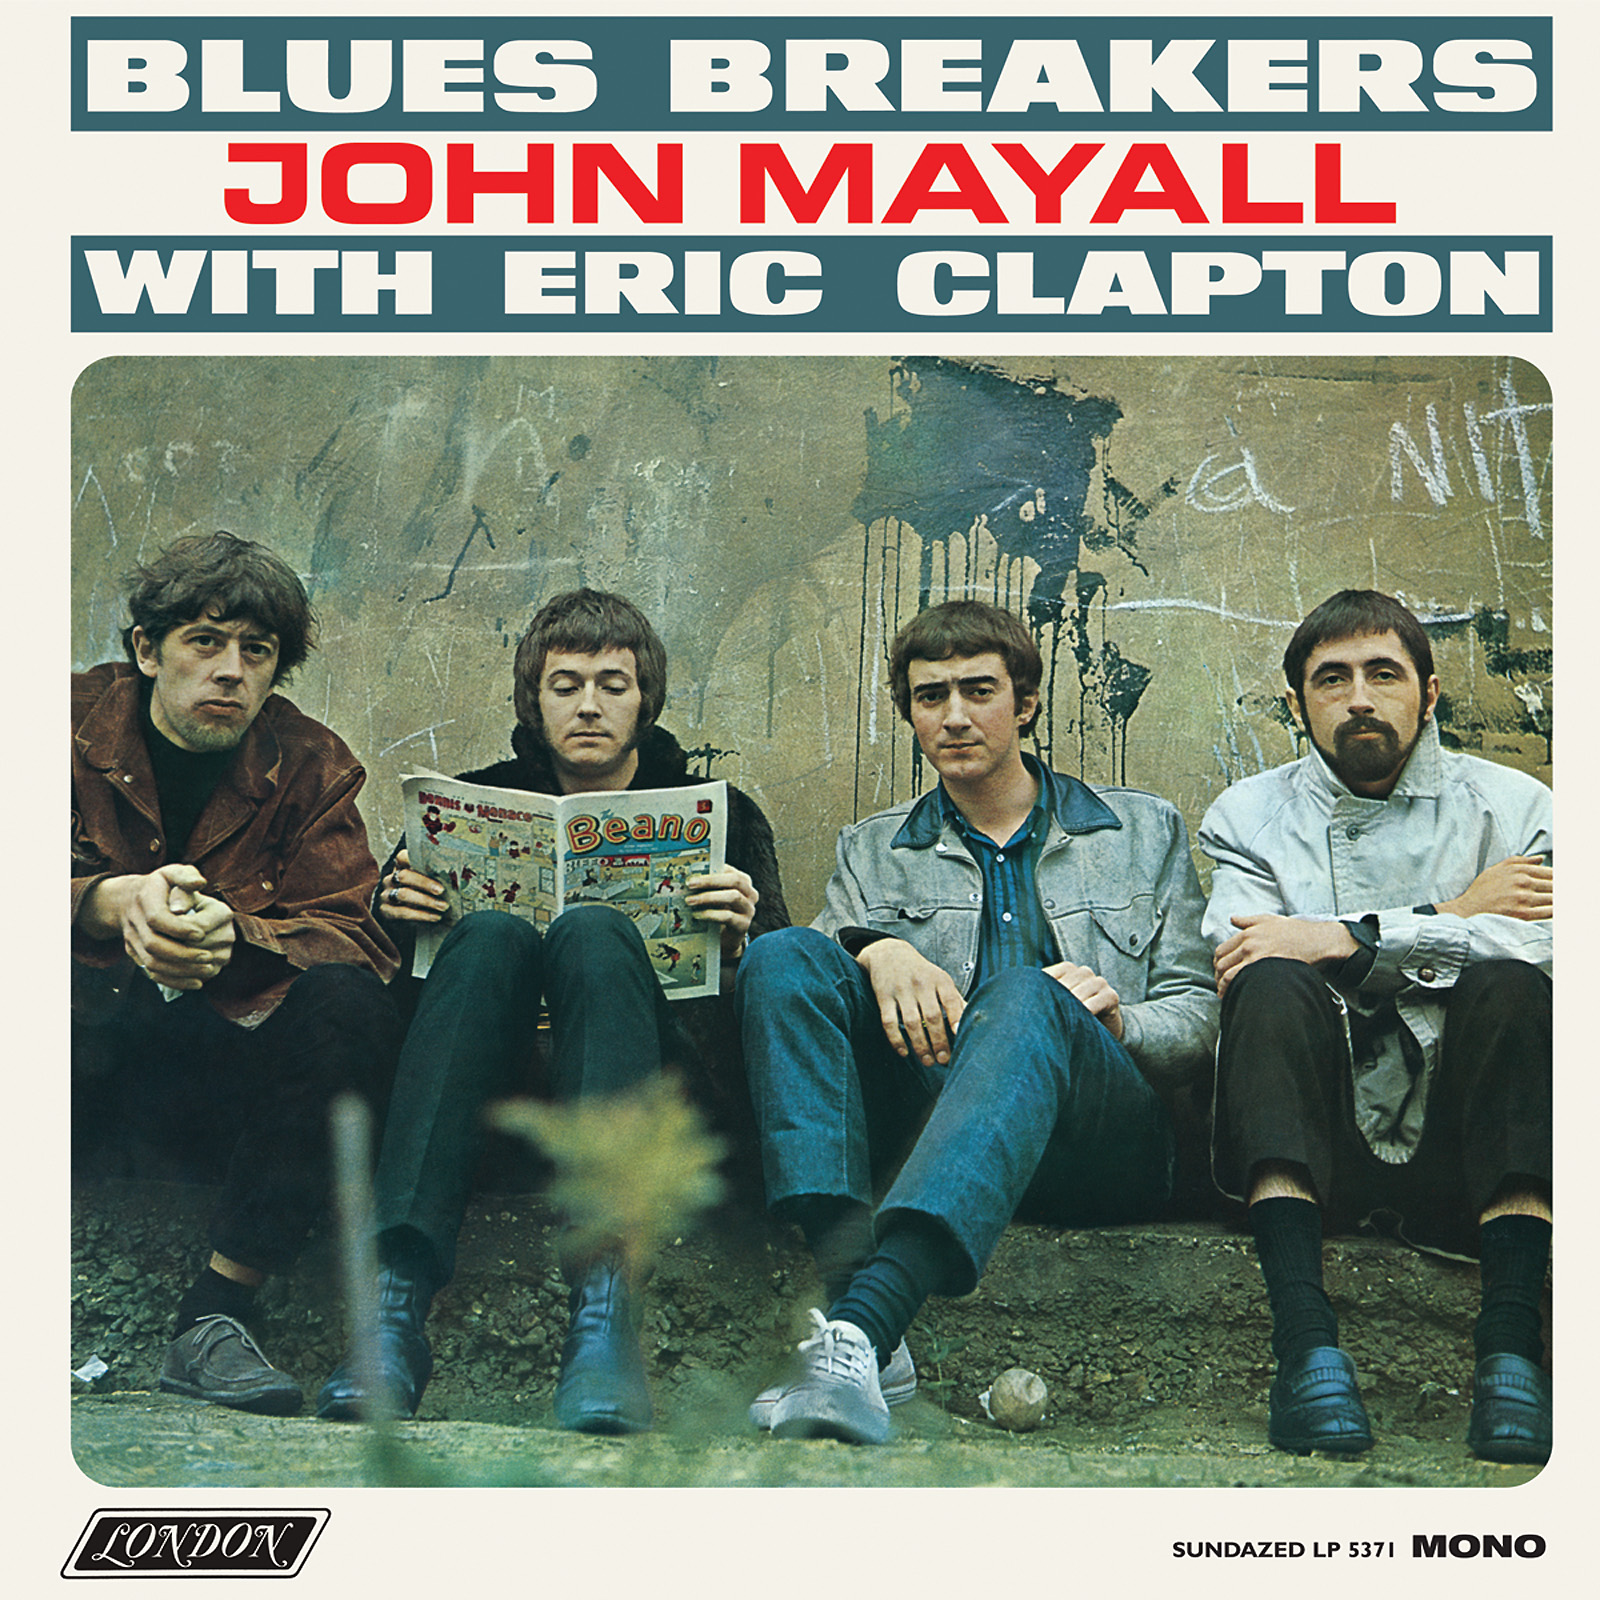 Mayall, John and the Blues Breakers - Blues Breakers with Eric Clapton MONO Edition CD